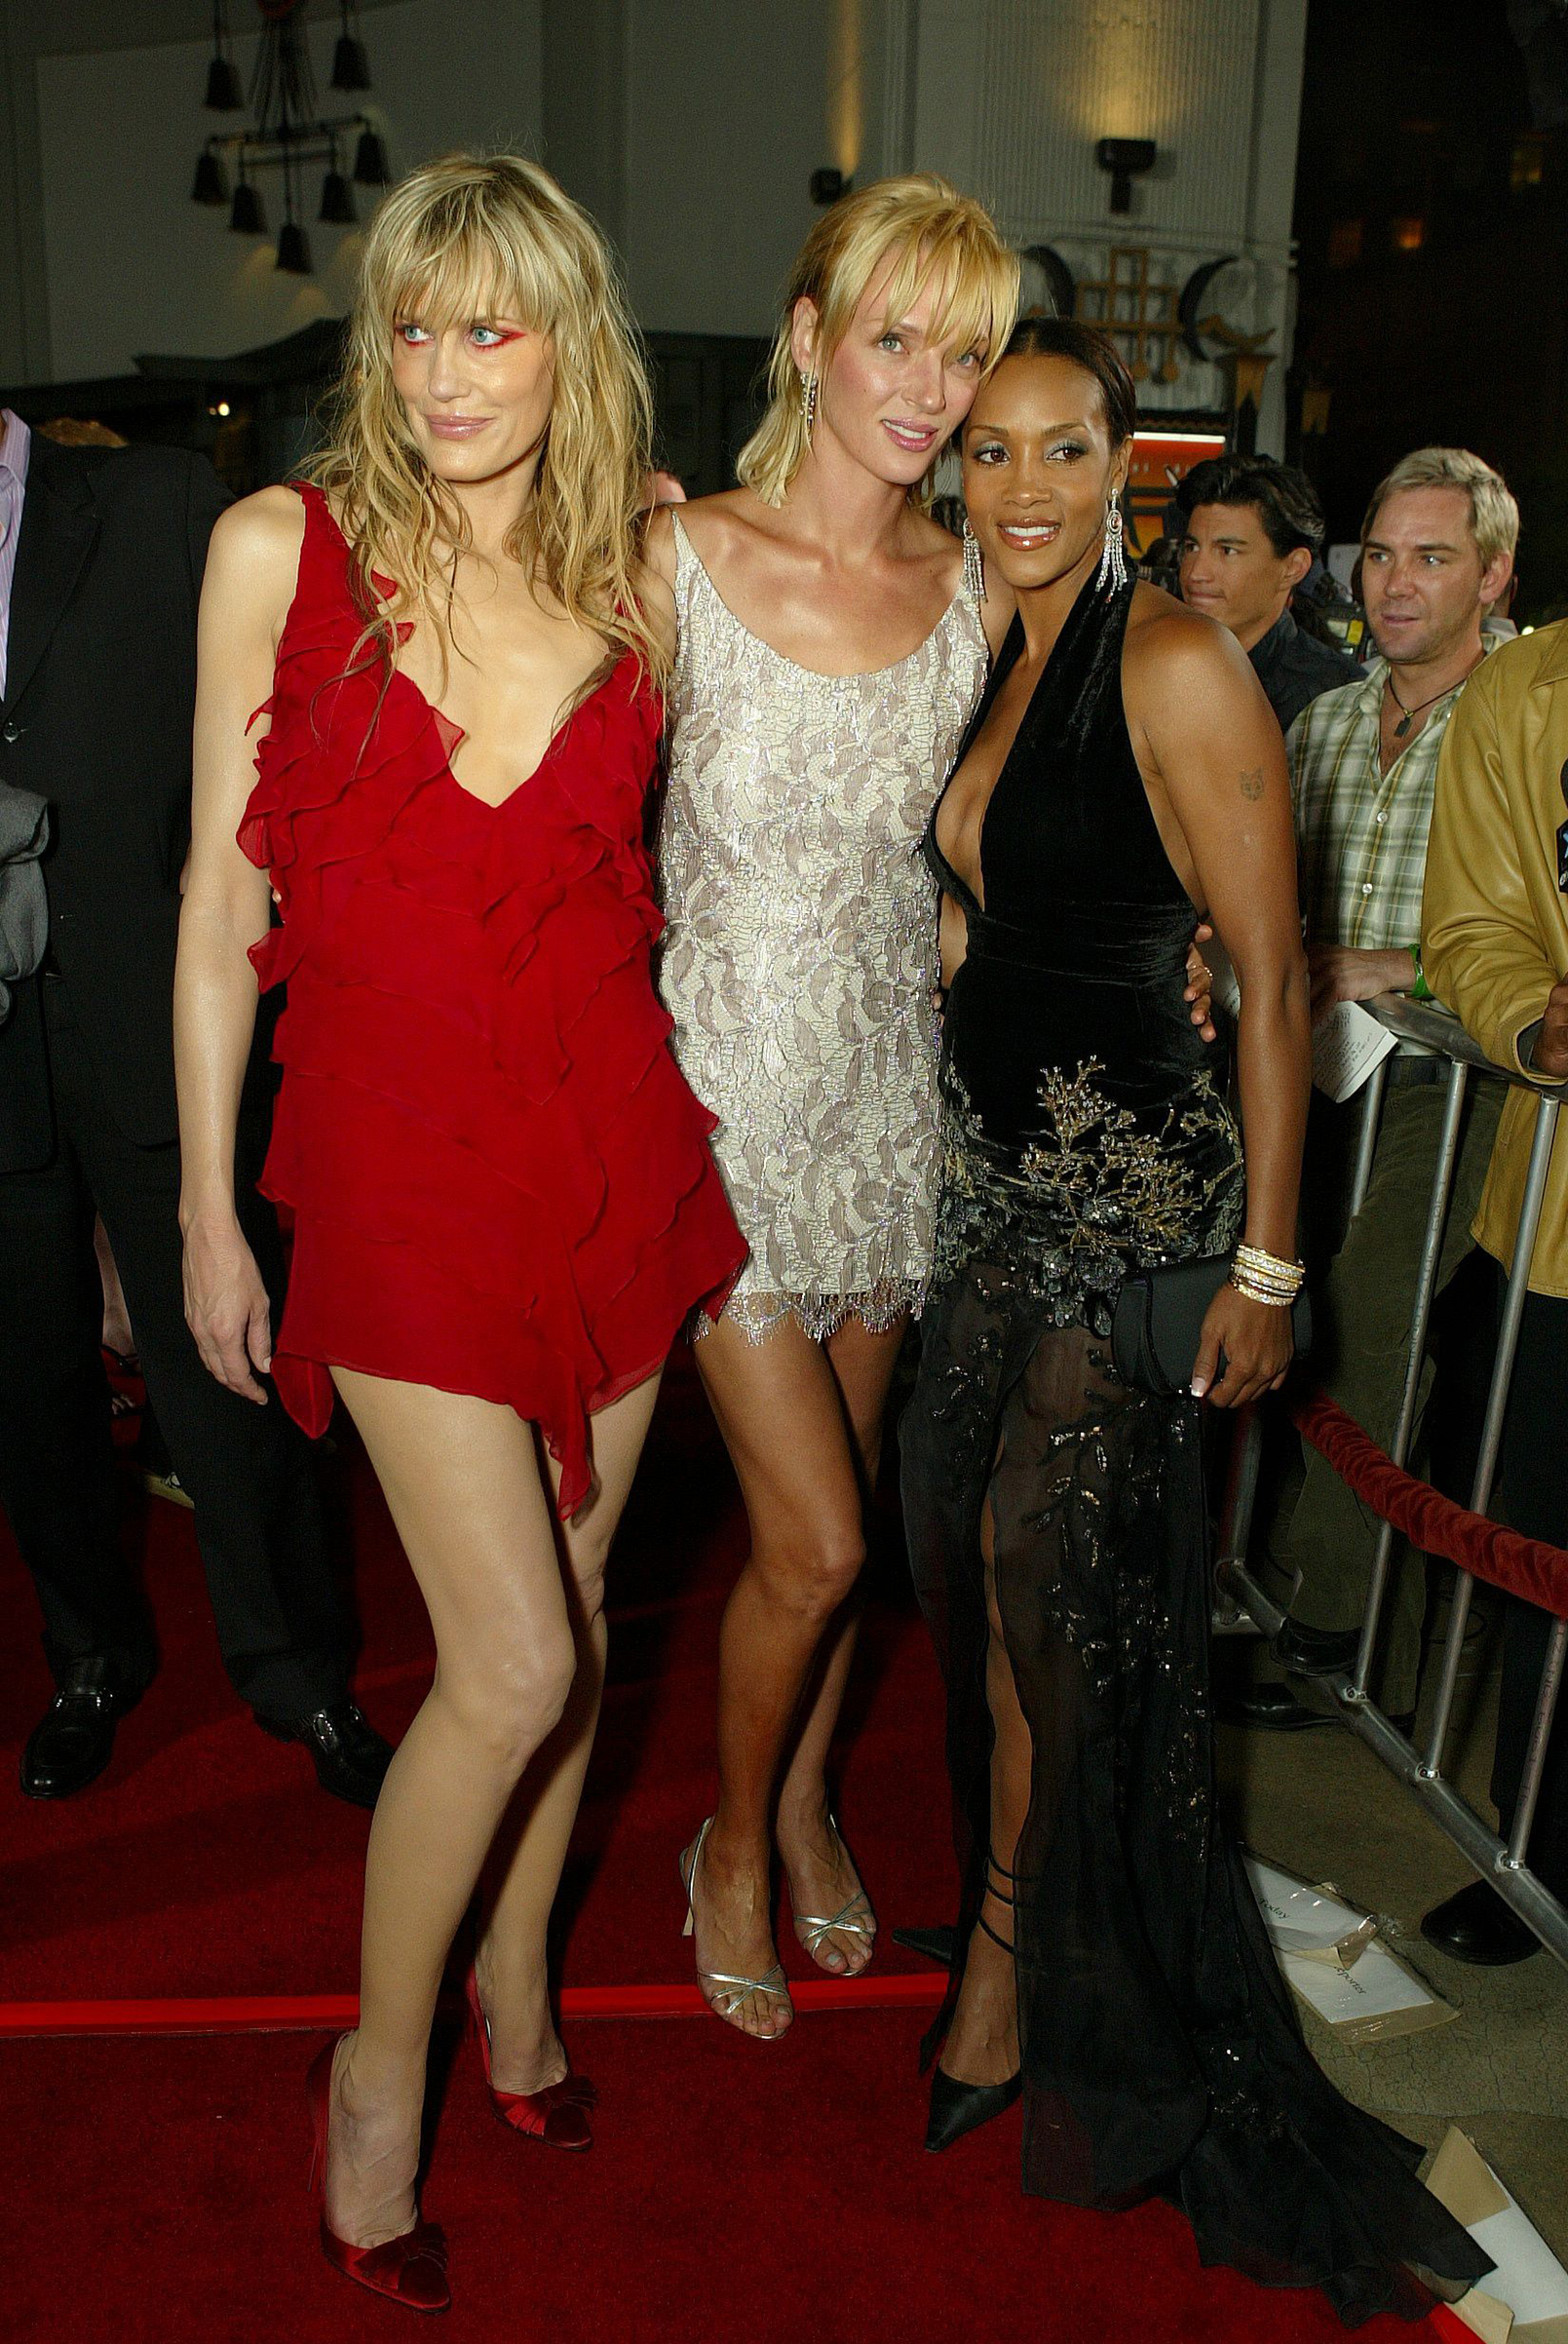 Daryl Hannah, Uma Thurman and Vivica A. Fox at the film premiere of 'Kill Bill: Volume 1' in Los Angeles on Sept. 29, 2003.